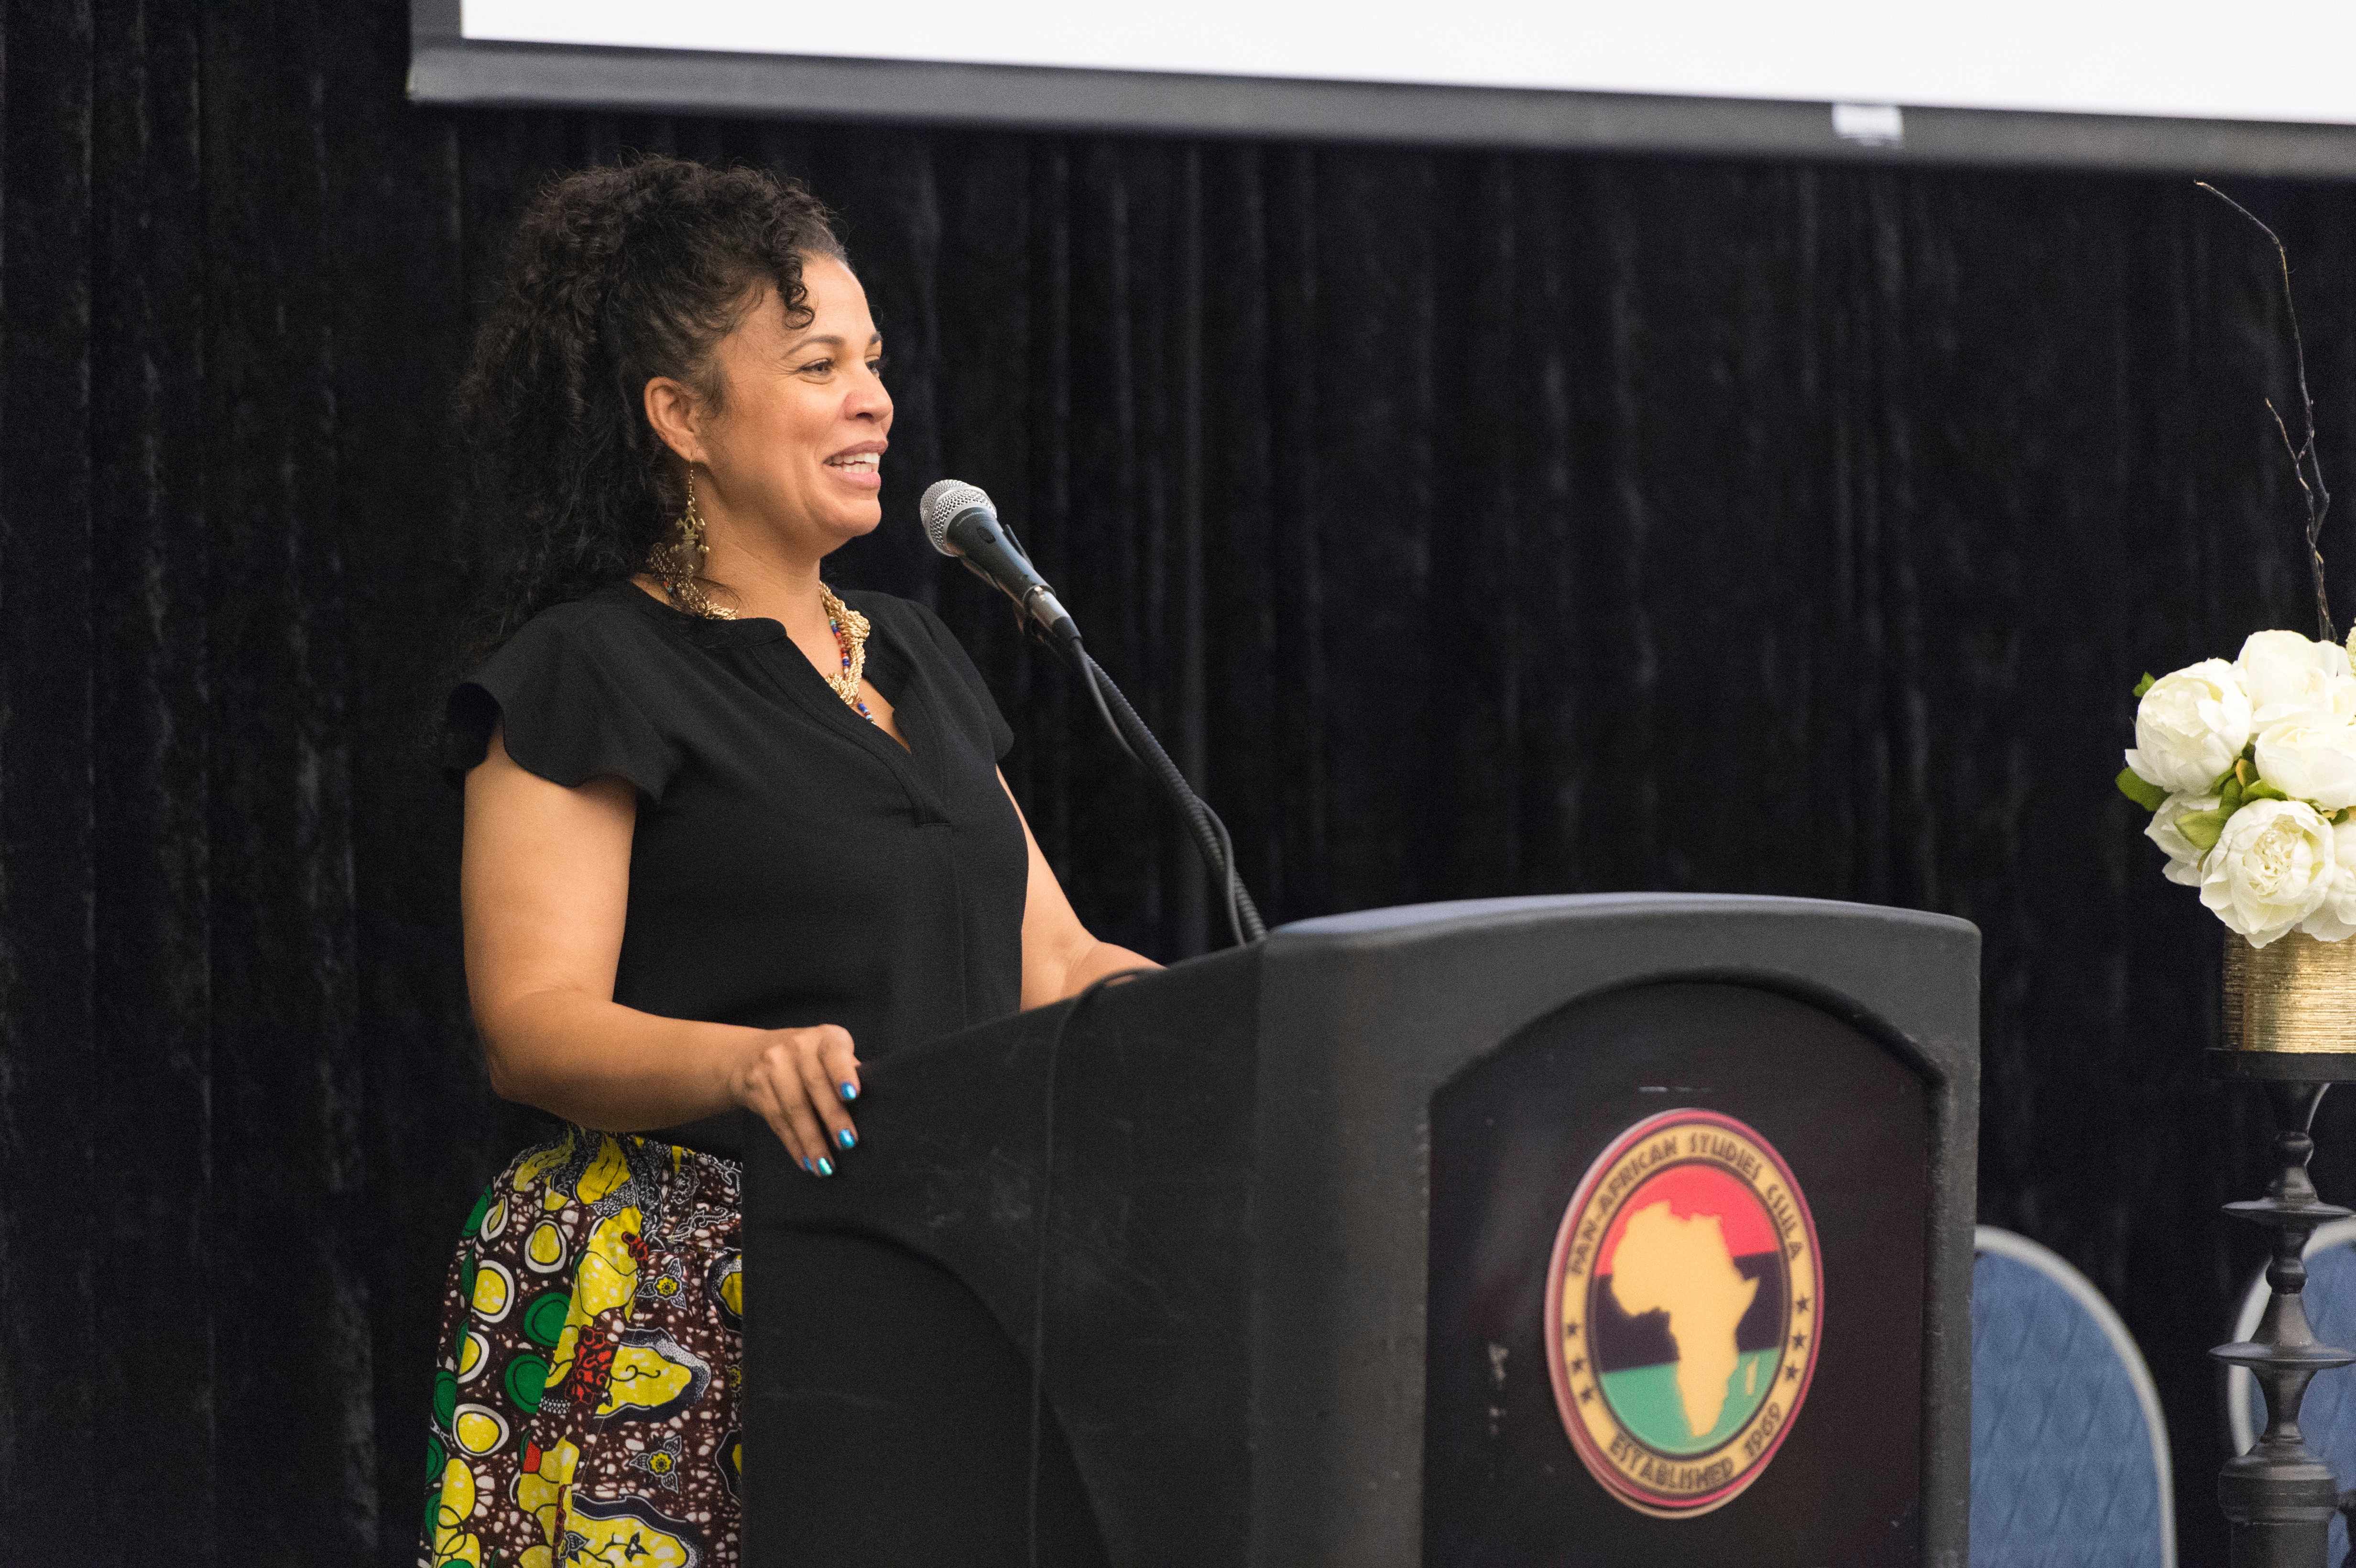 Melina Abdullah speaks at the event